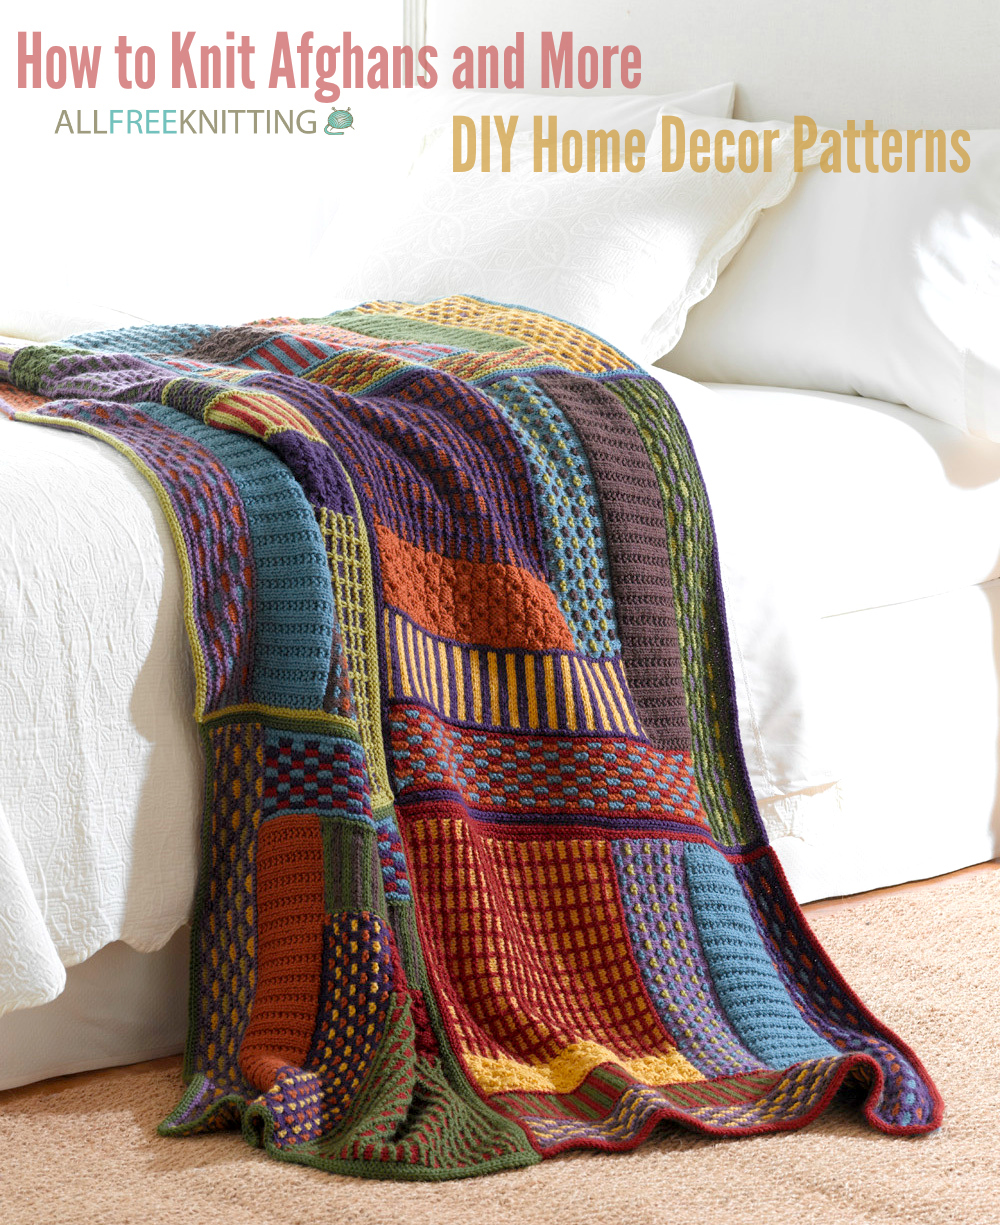 626ac56d0bcb How to Knit Afghans and More  300 DIY Home Decor Patterns ...